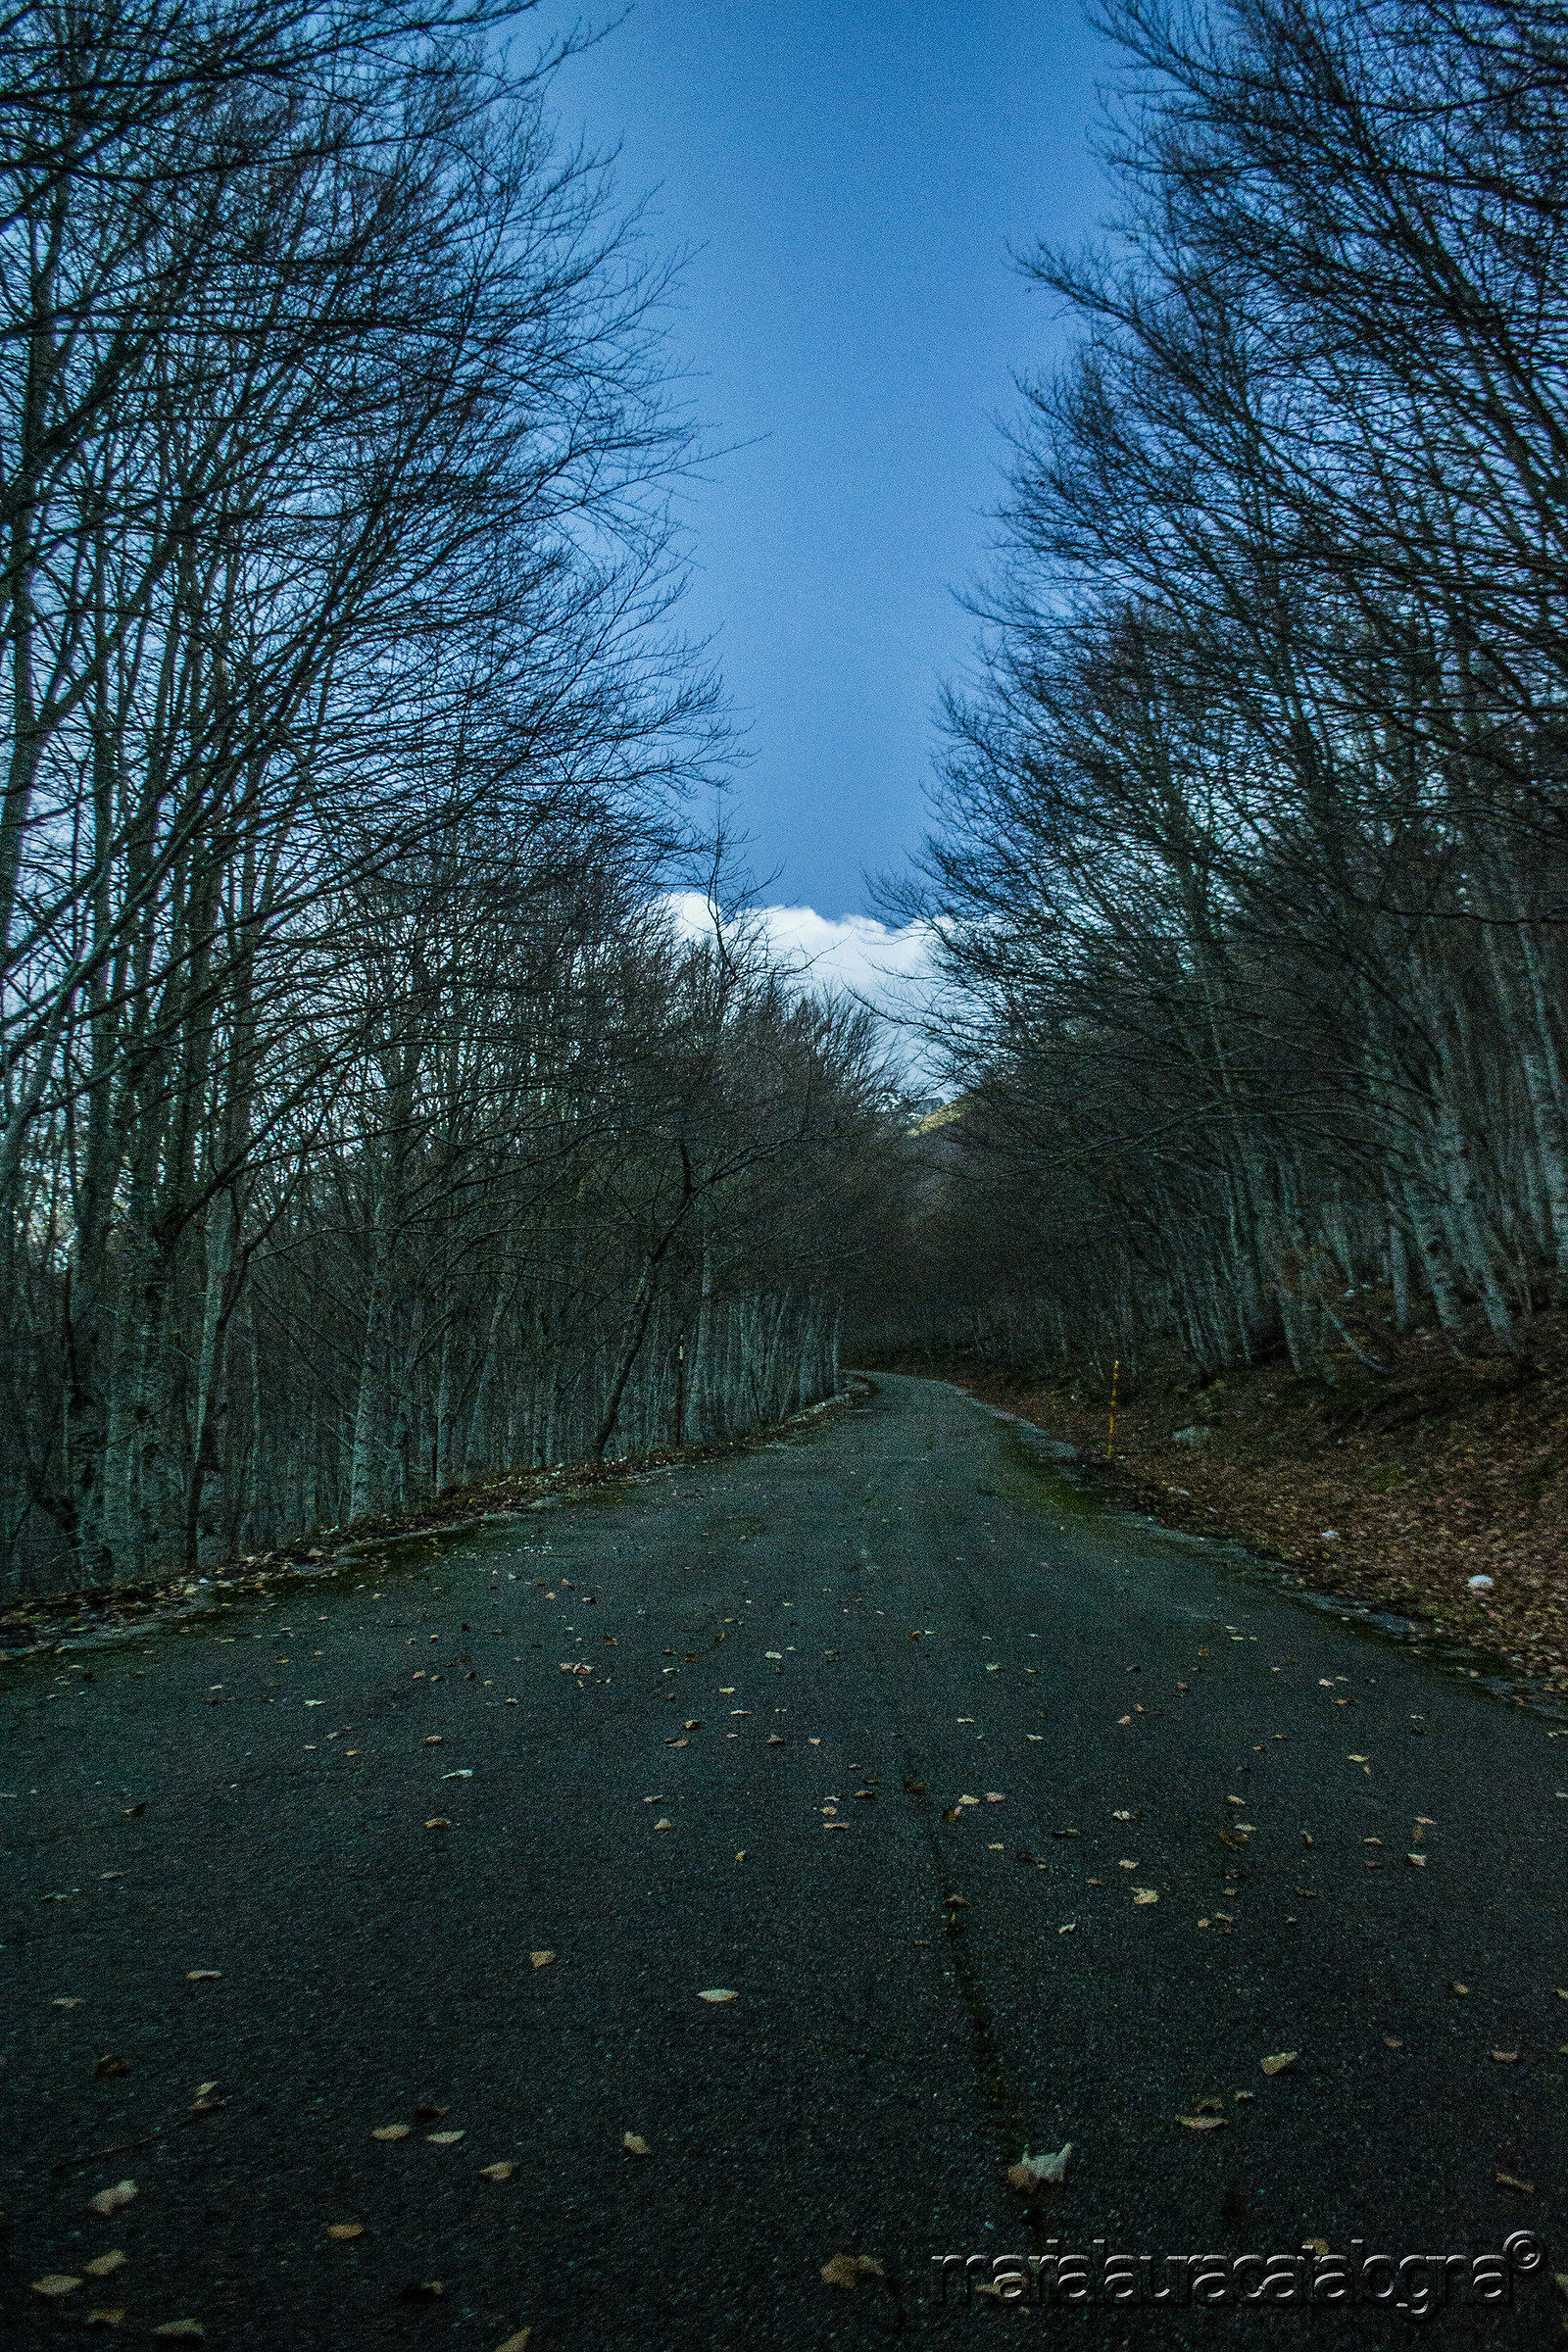 Avenue of leafless trees and leaves on the ground...